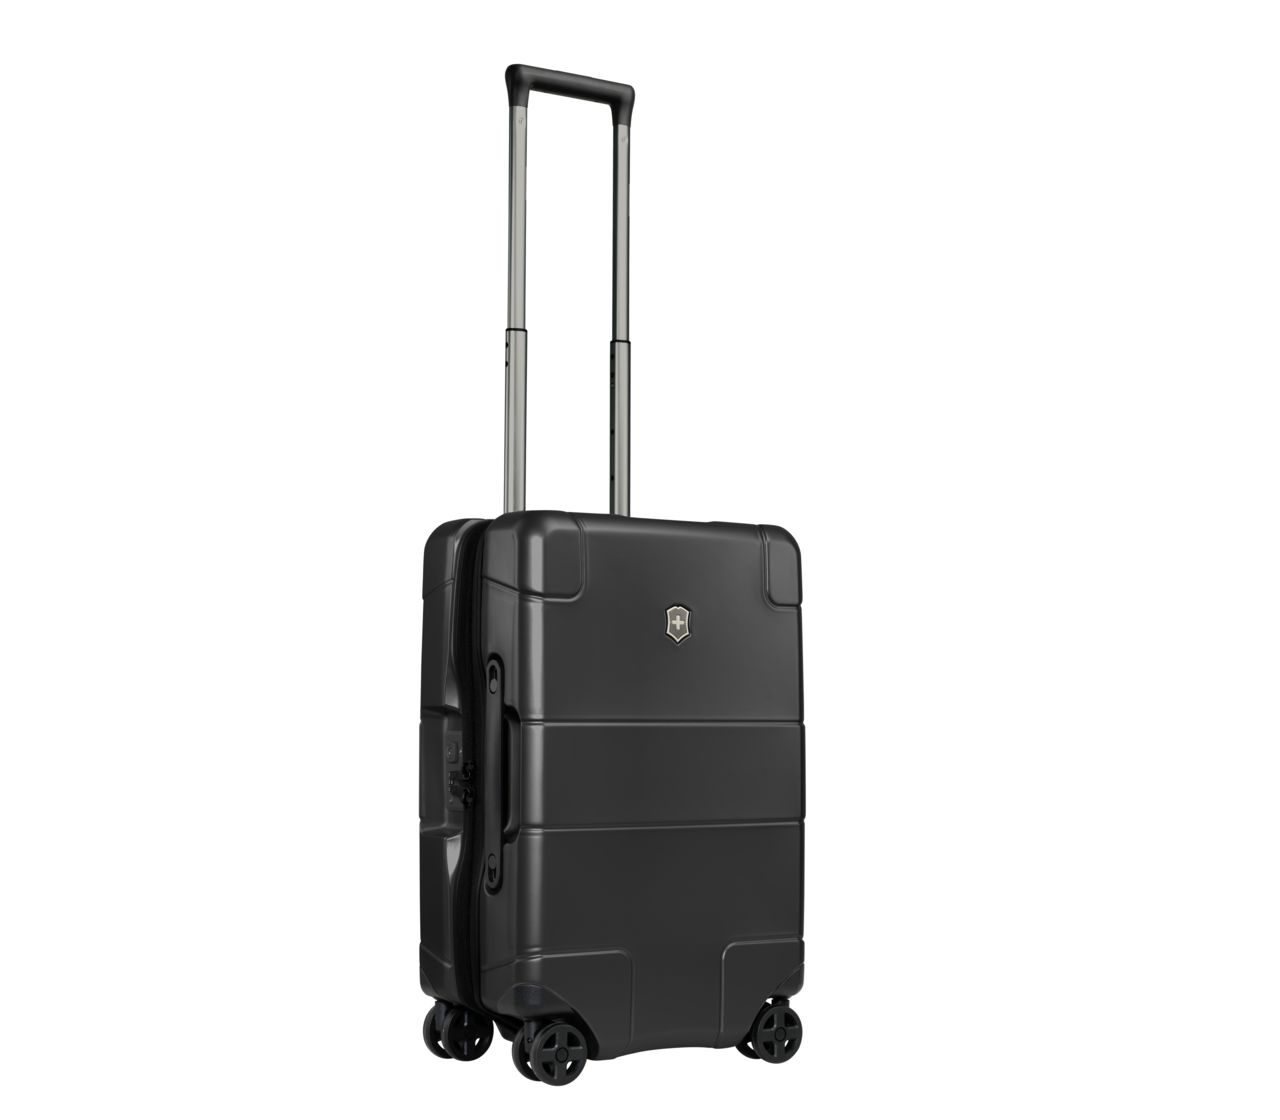 Lexicon Hardside Frequent Flyer Carry-On-602101